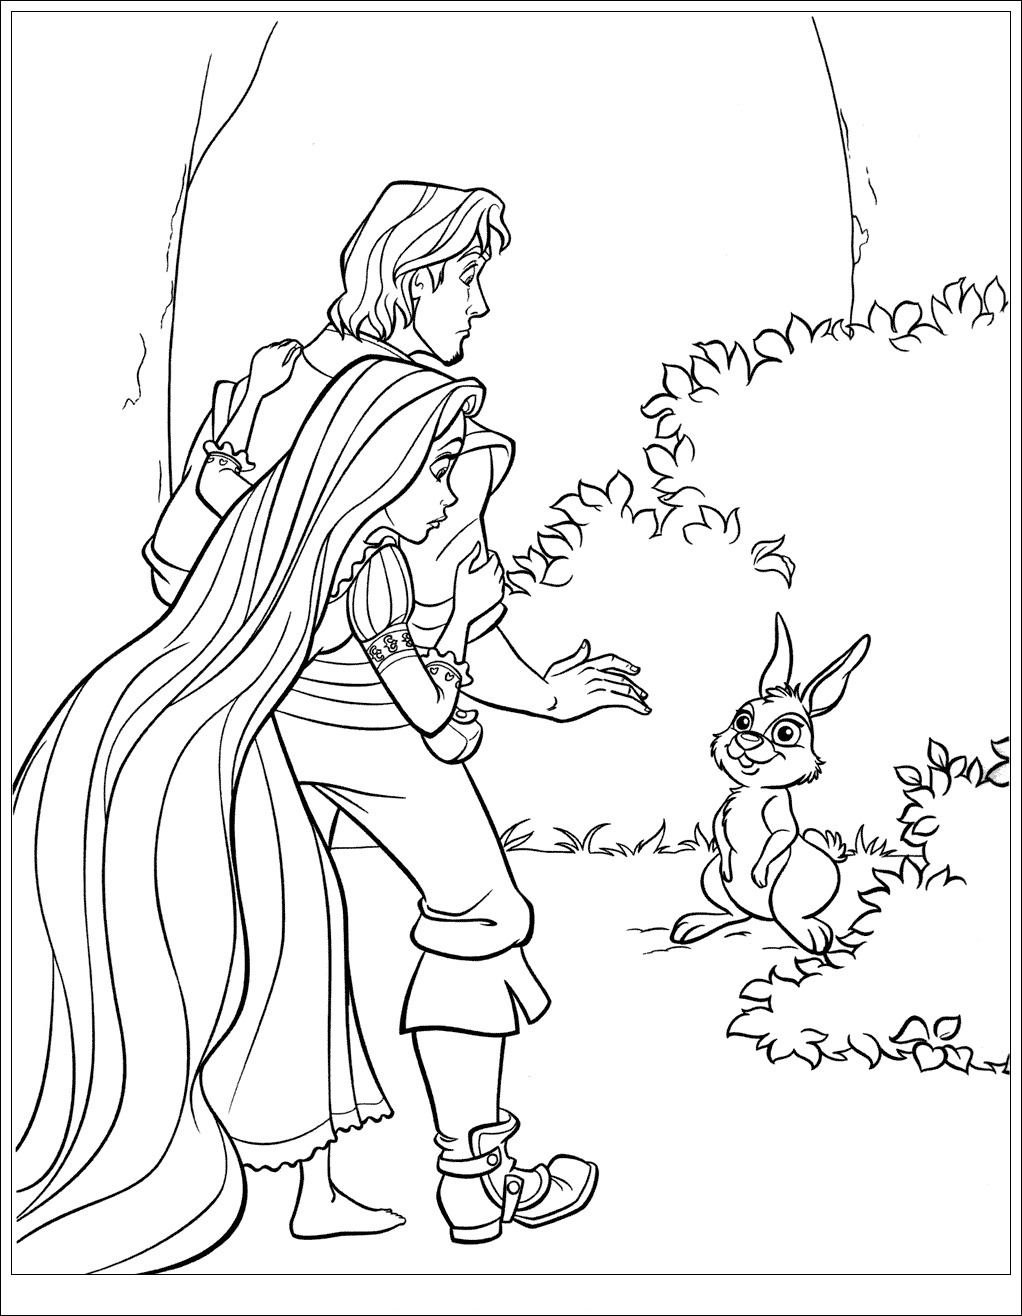 Flynn and rabbit Coloring Page